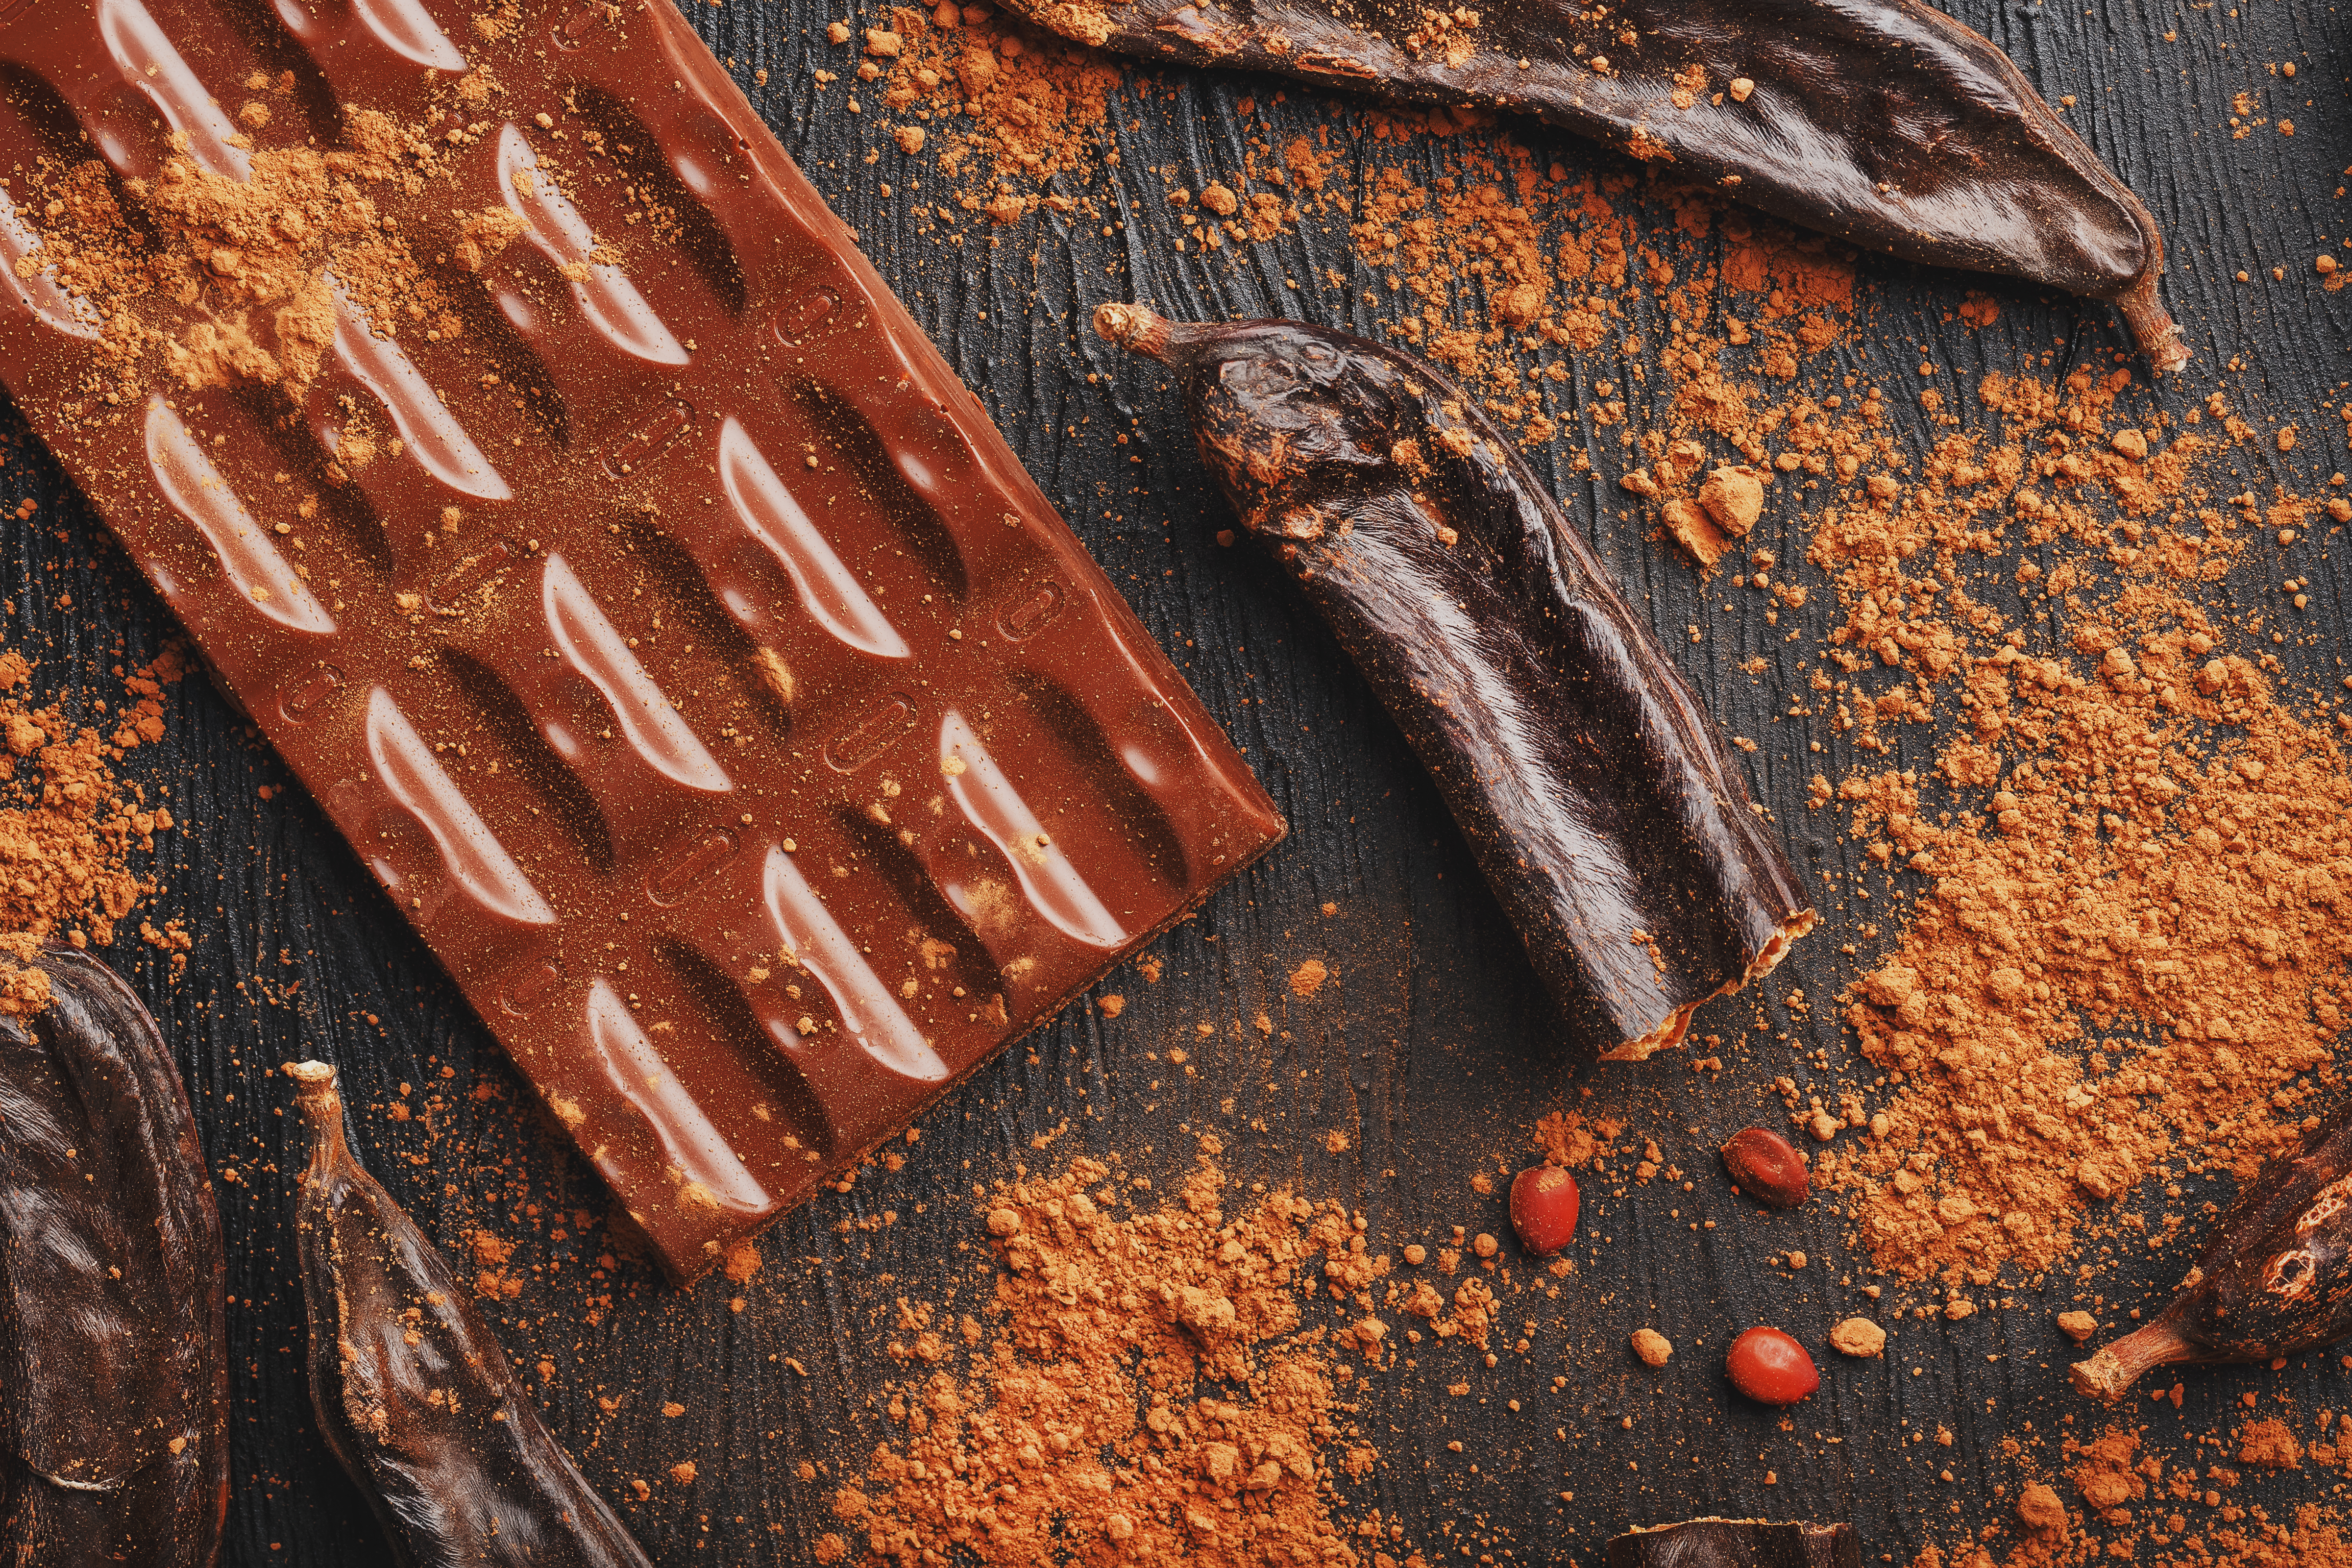 Carob, the all-natural sweetener that tastes like chocolate, is in high demand.